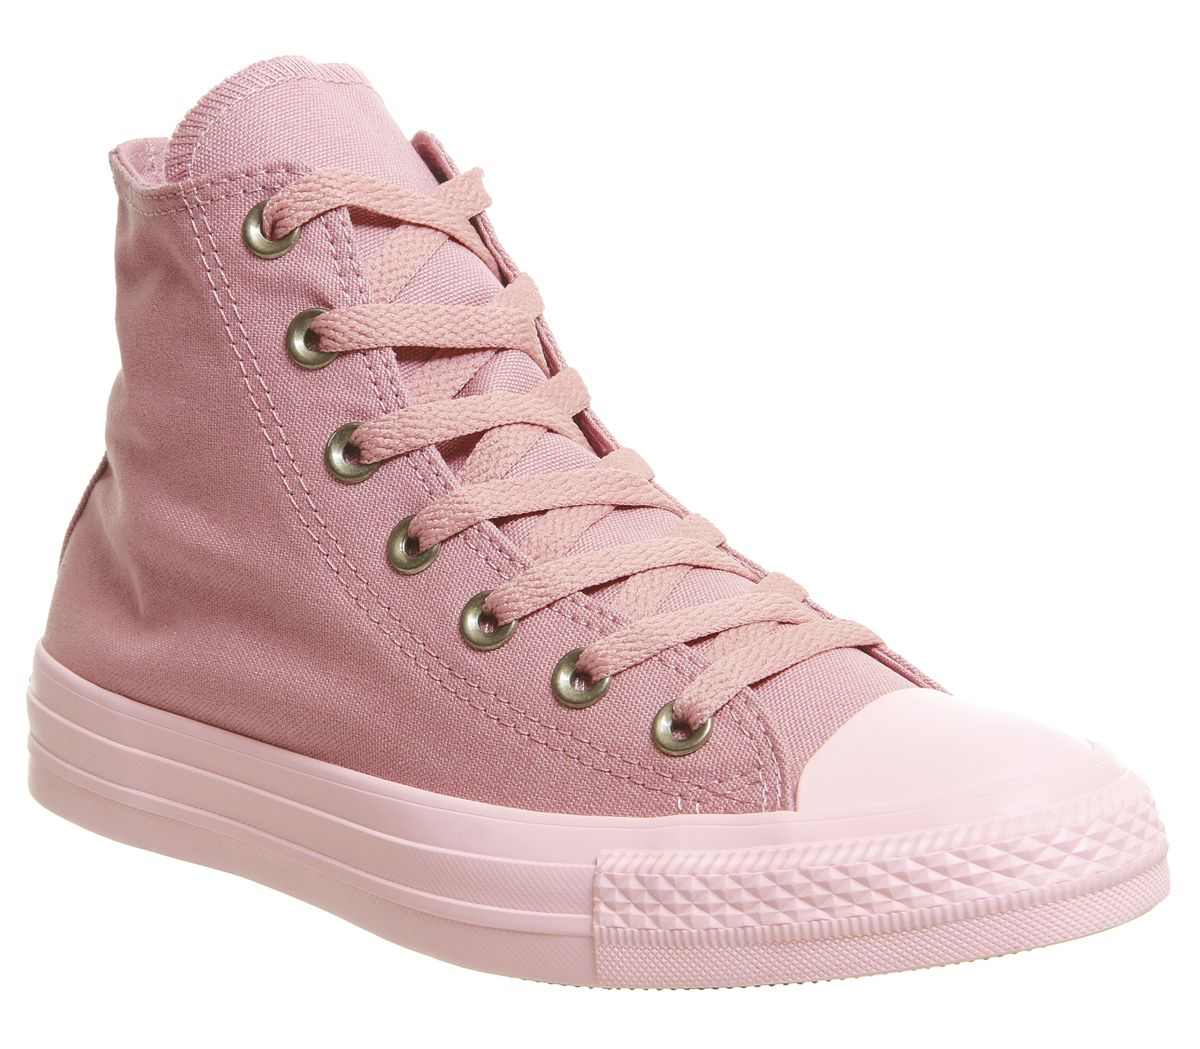 8c4b68c413cf Converse Converse All Star Hi Trainers Rust Pink - Hers trainers